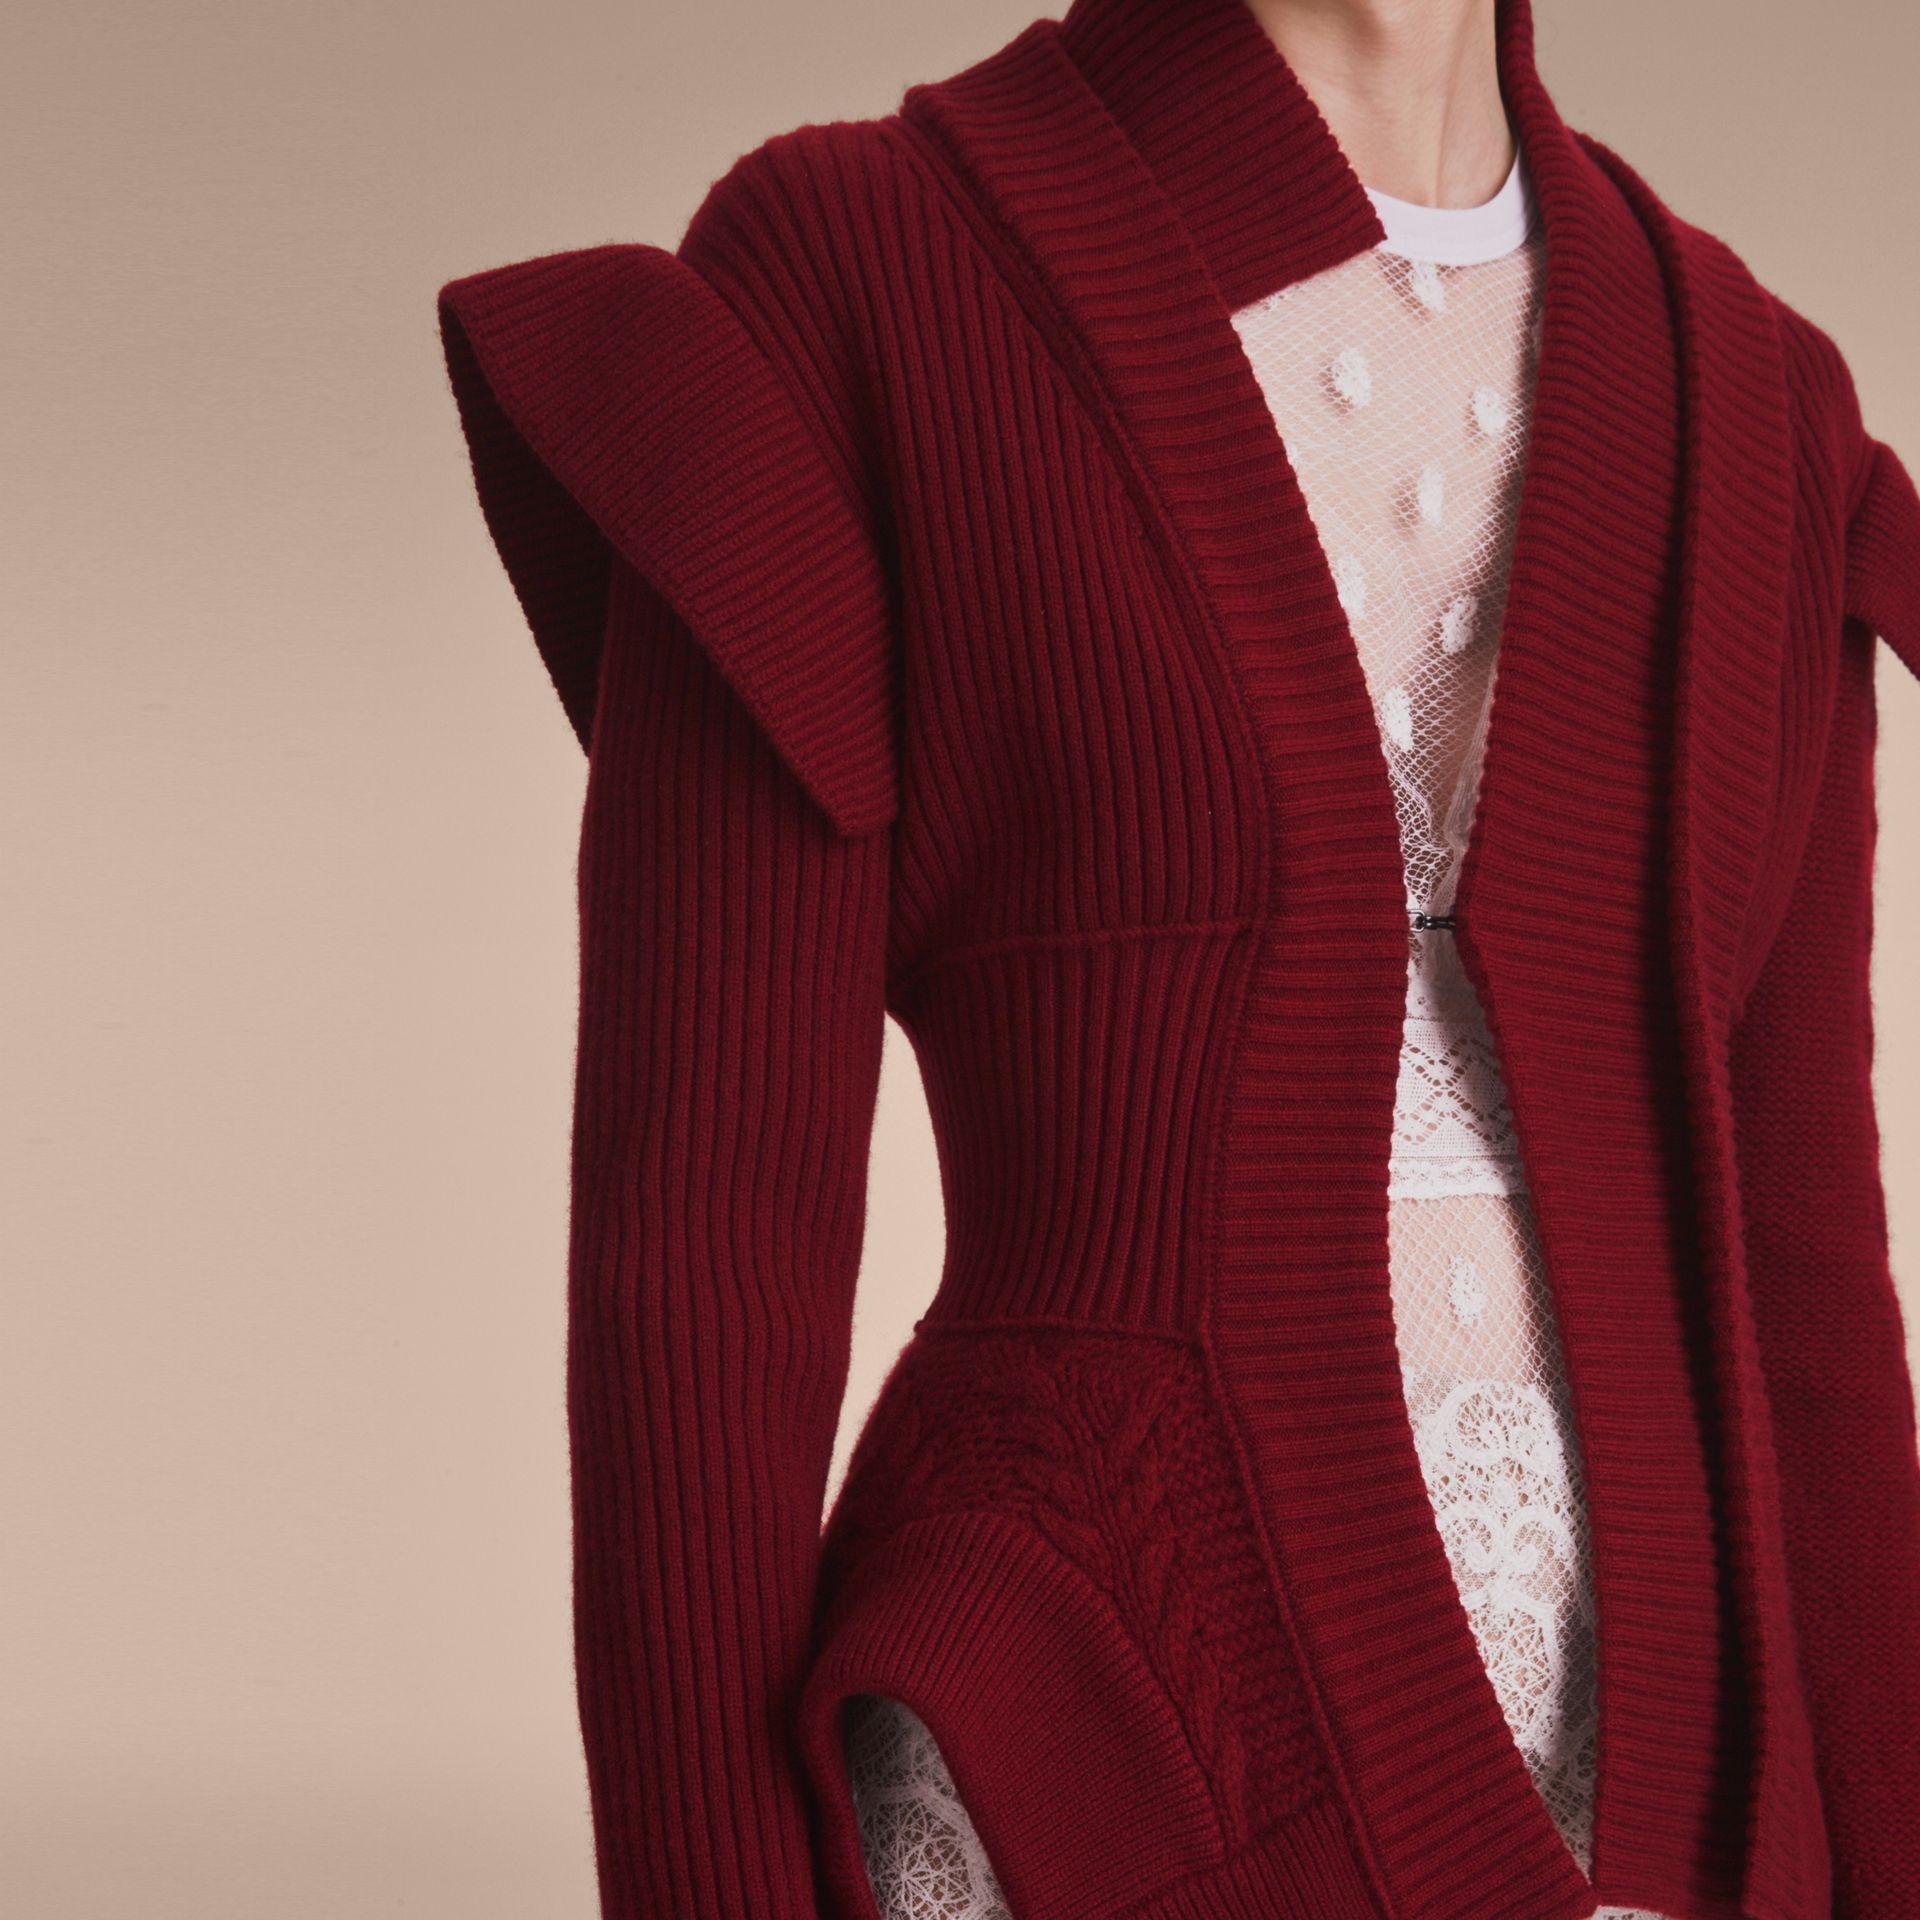 Knitted Wool Cashmere Military-inspired Jacket in Bordeaux - Women | Burberry - gallery image 5